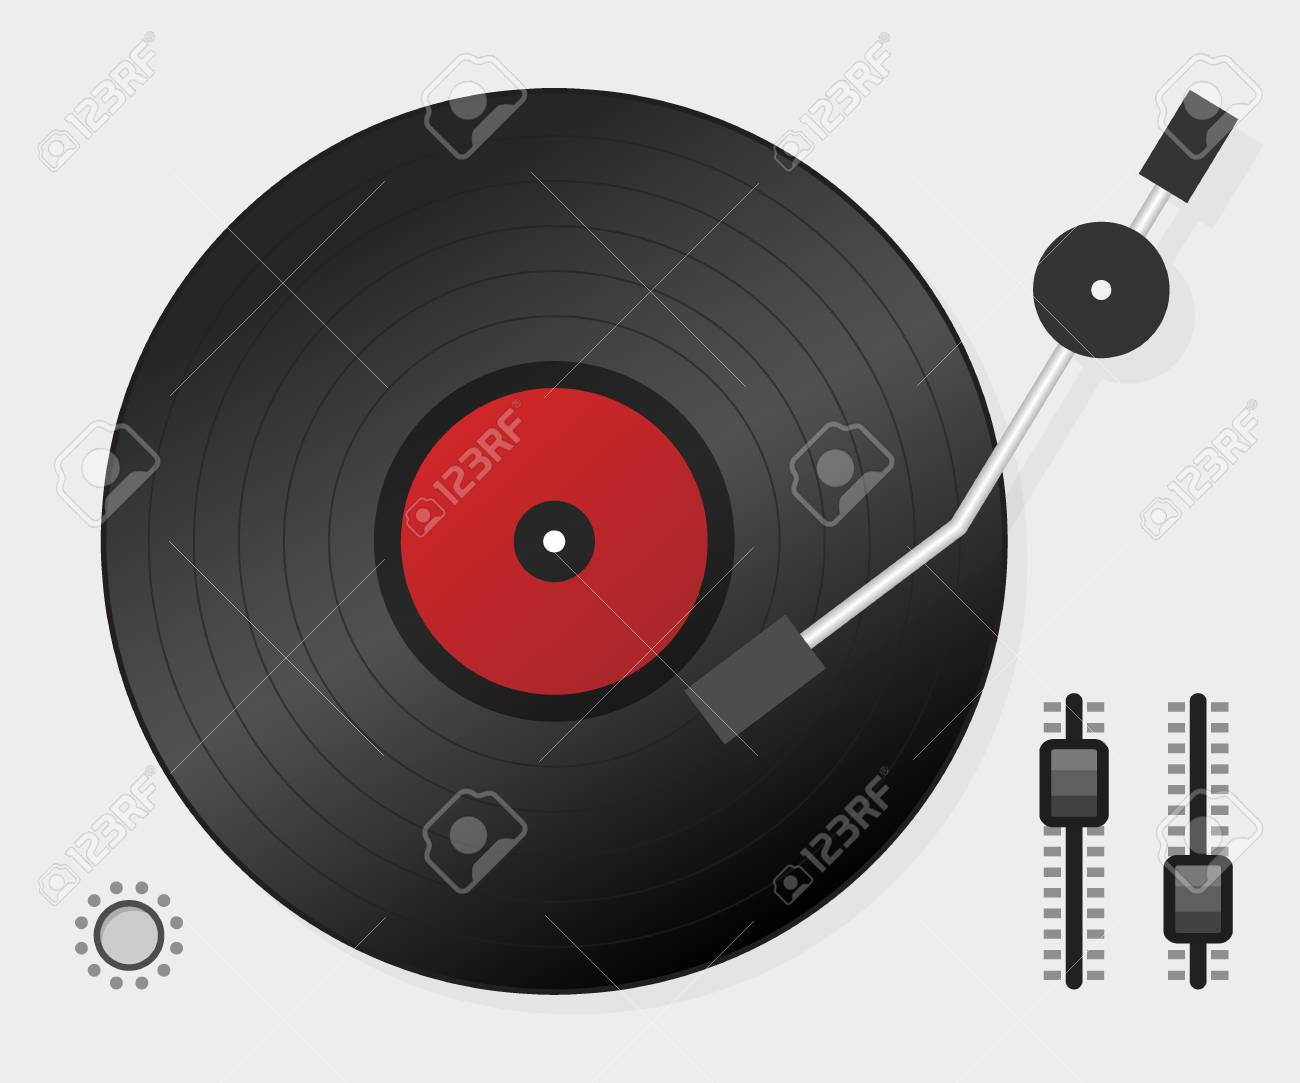 DJ playing vinyl. Top view. DJ Interface workspace mixer console turntables. Vector stock illustration. - 115091721